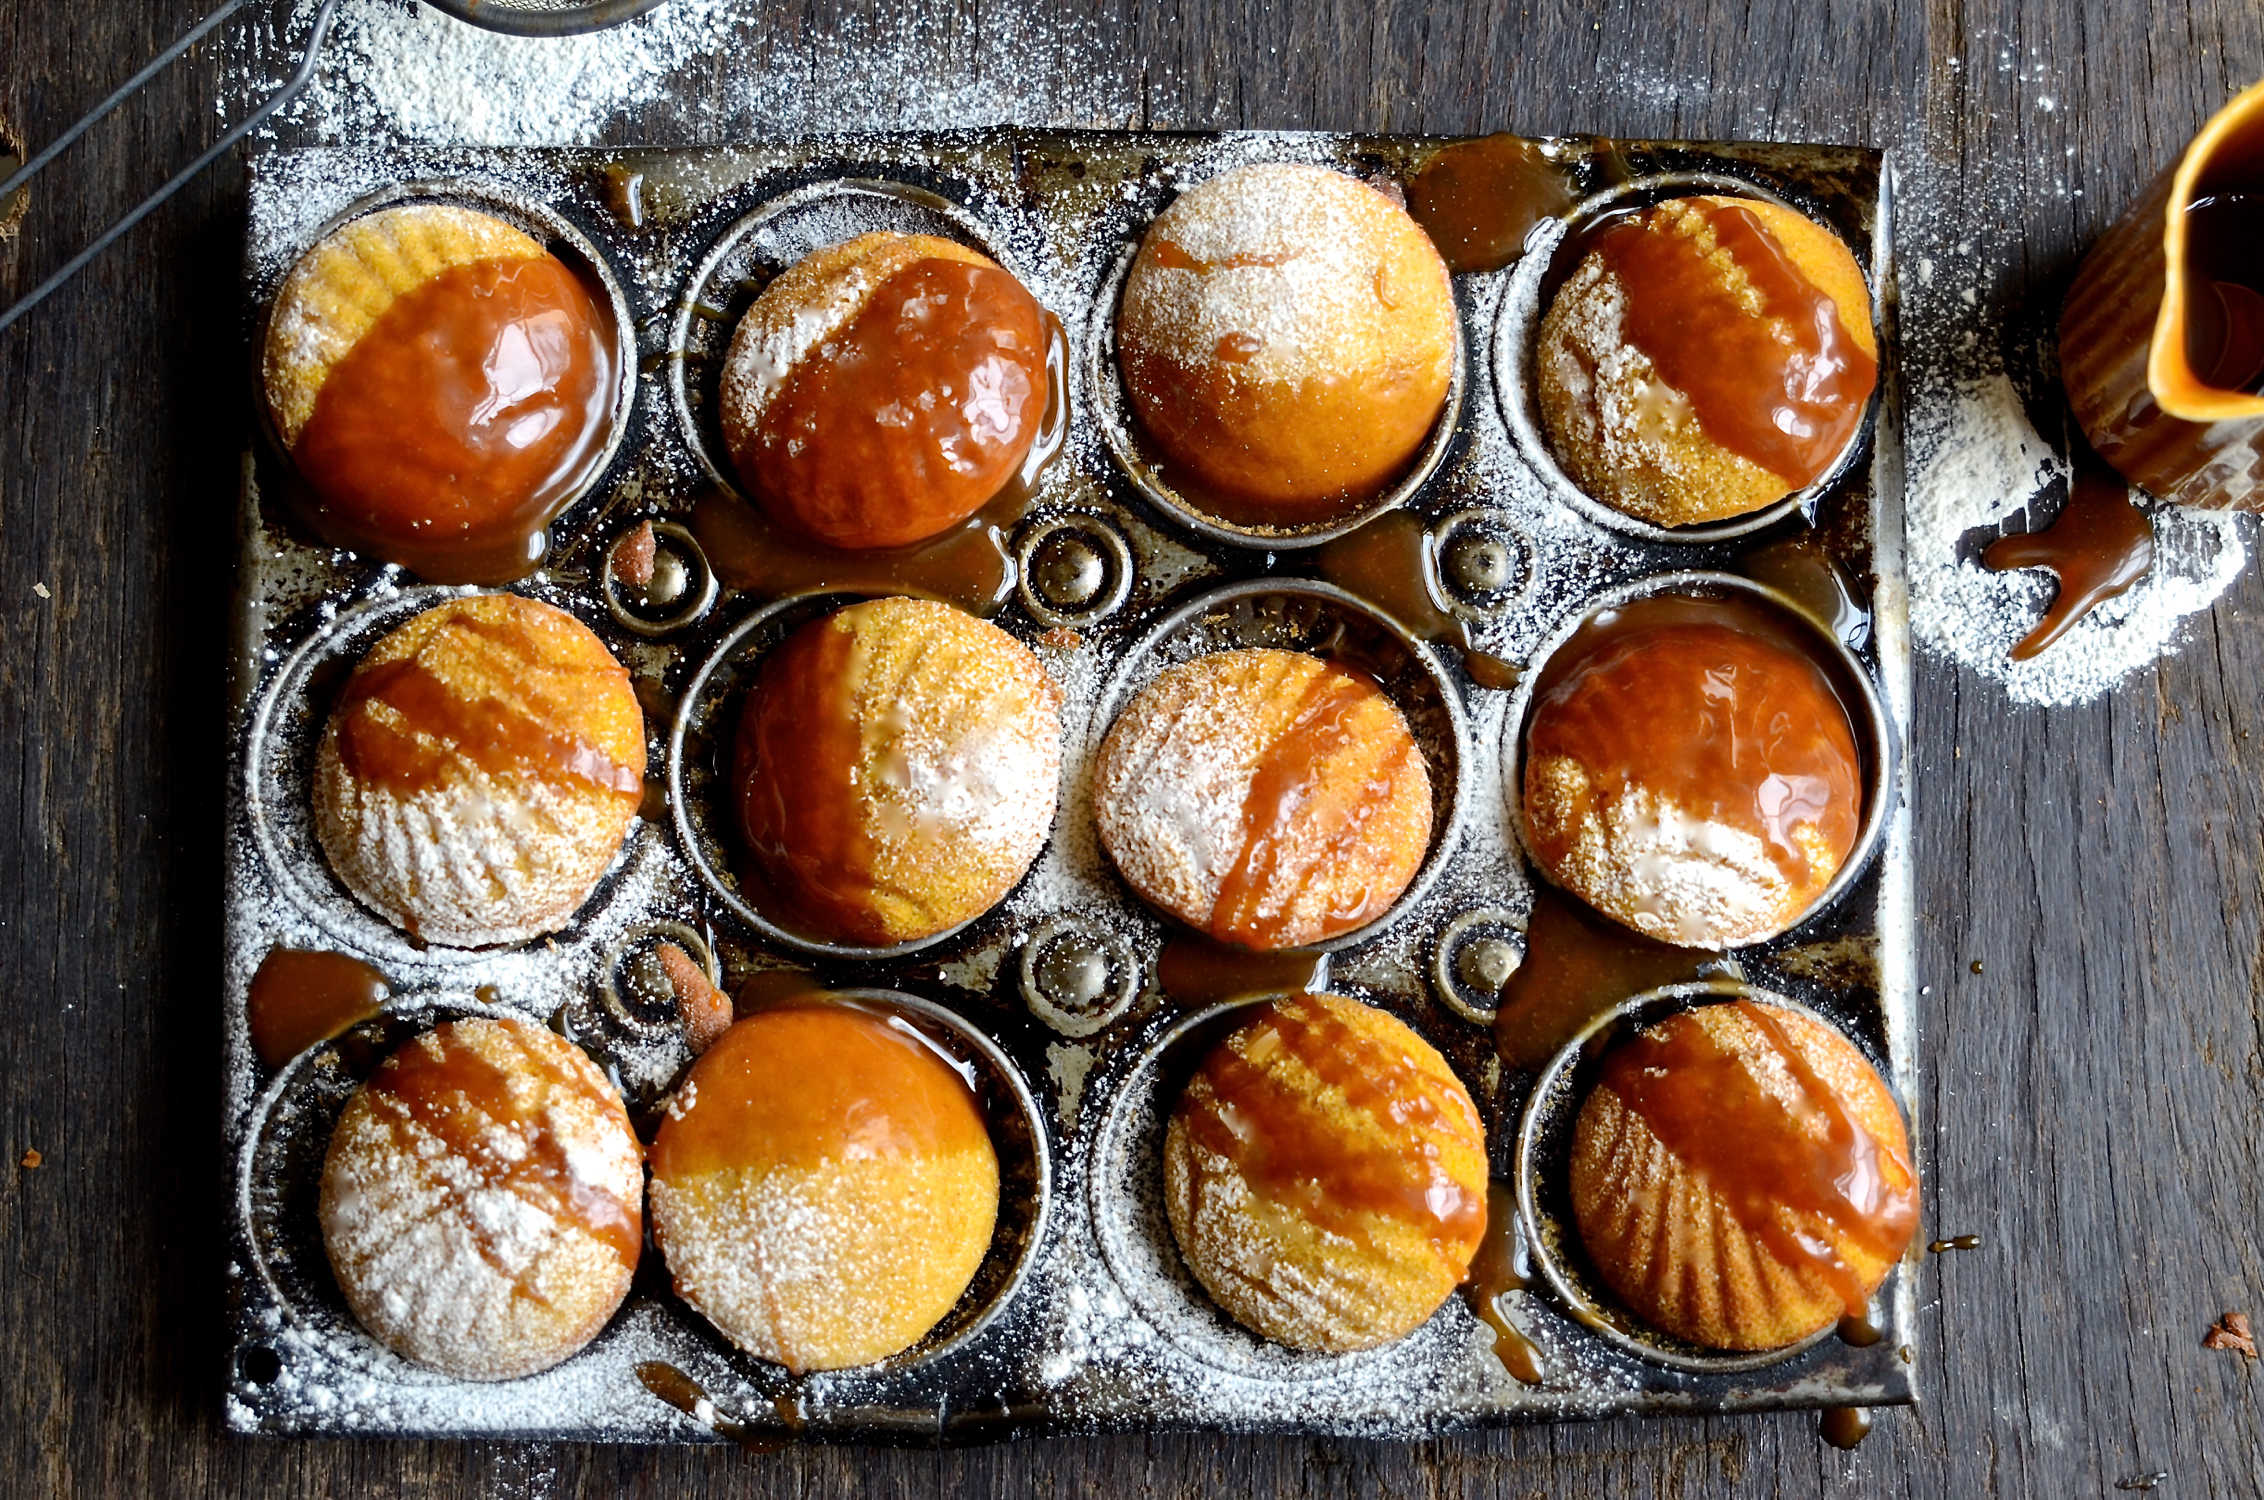 Pumpkin madeleines with caramel drizzle